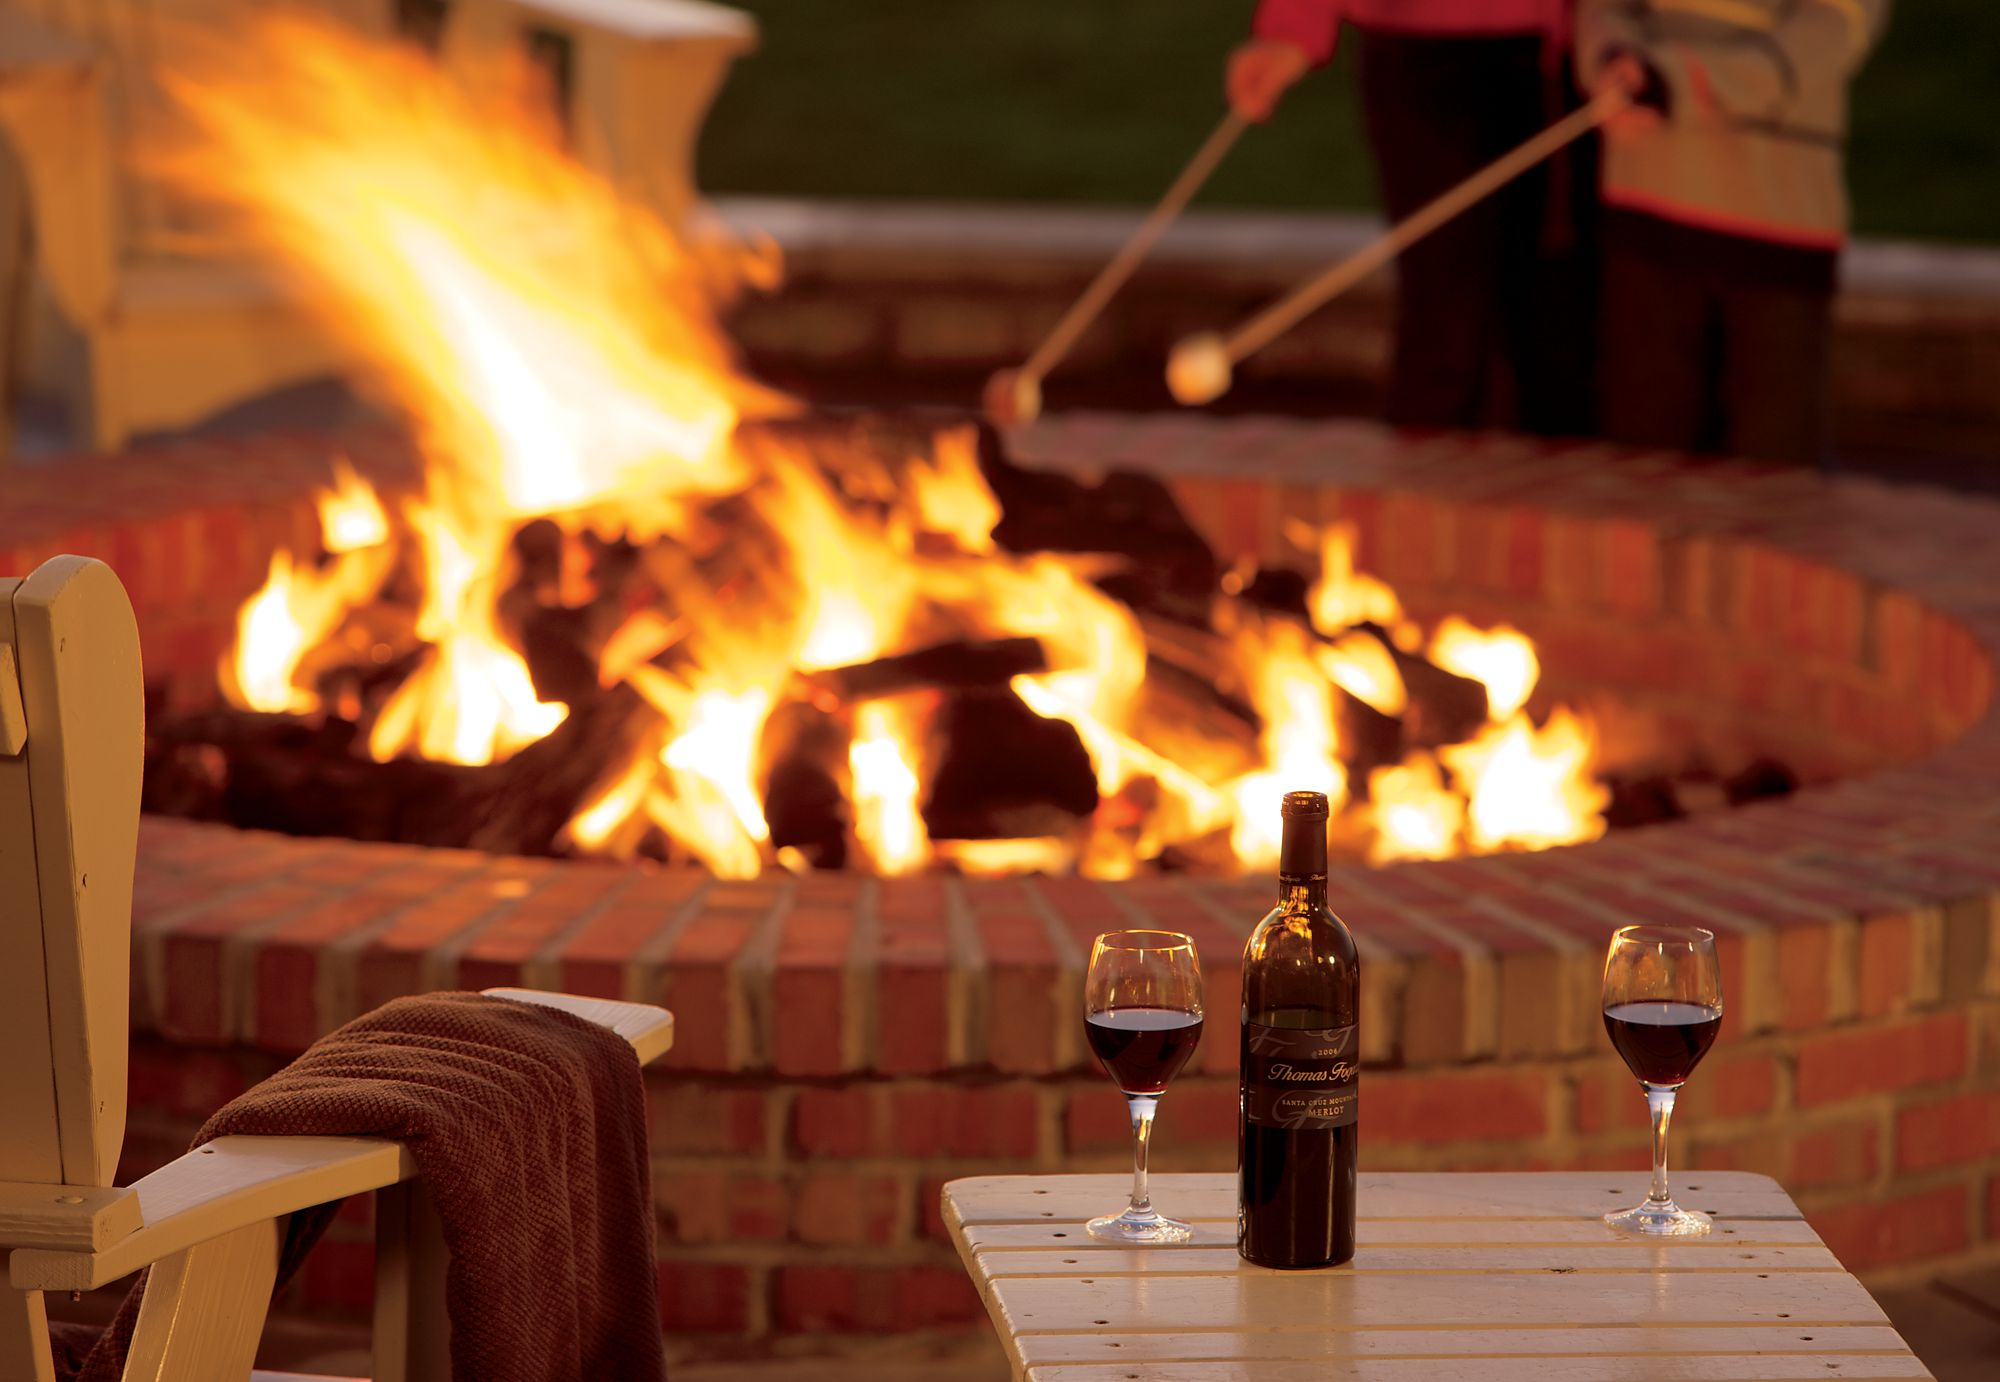 Close-up of a bottle of wine and two filled glasses on a table in front of a fire pit